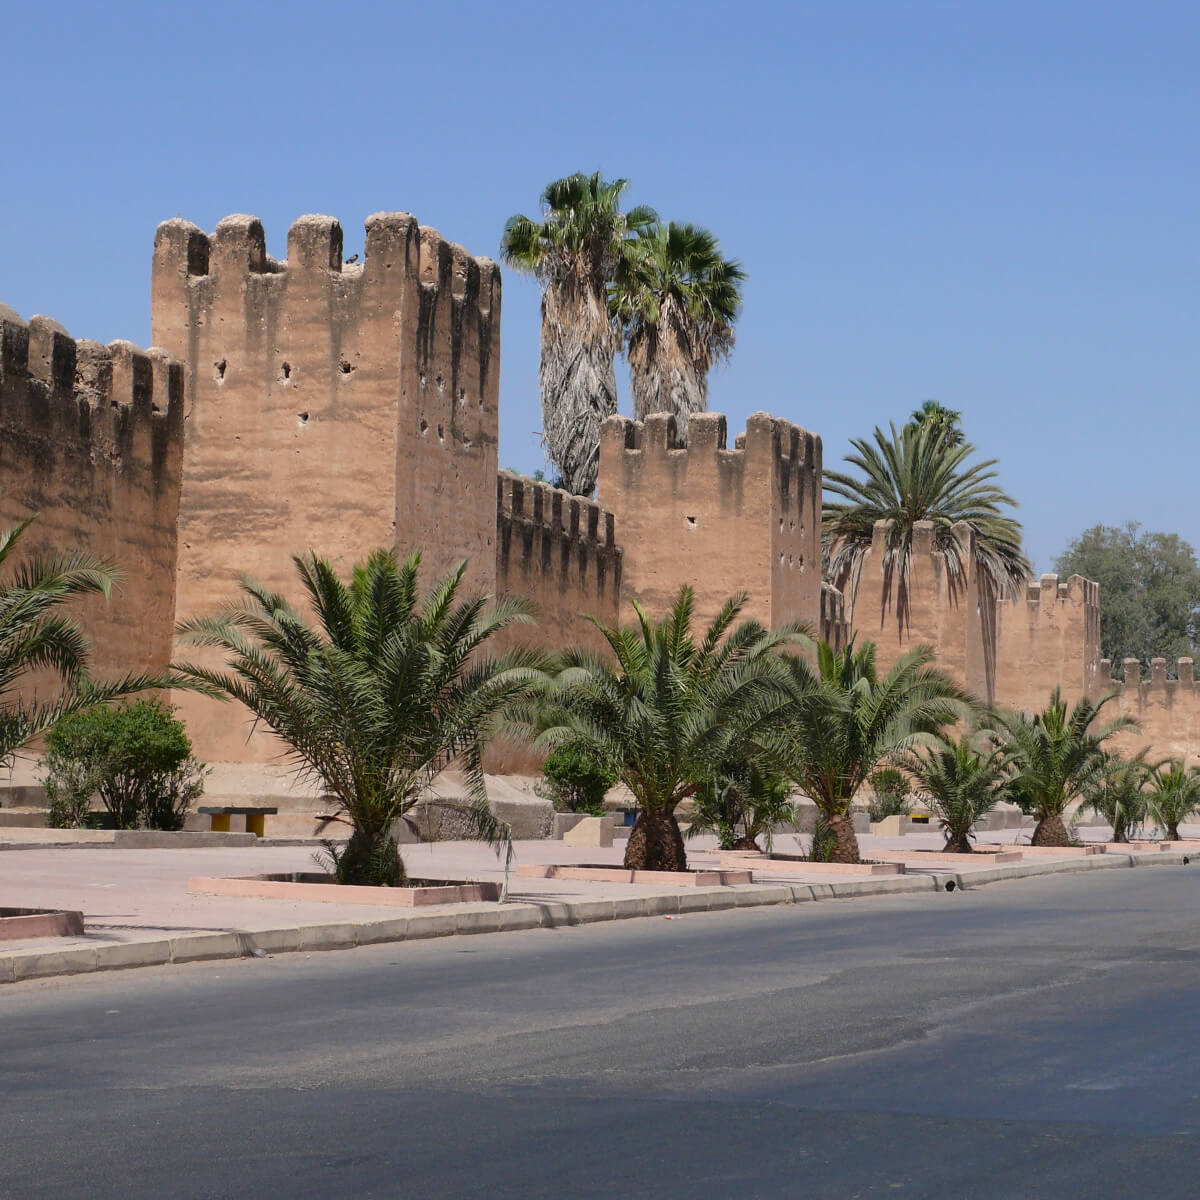 Car Rental 8 Travel Tips Deals Home: Taroudant Things To Do, Travel Advice